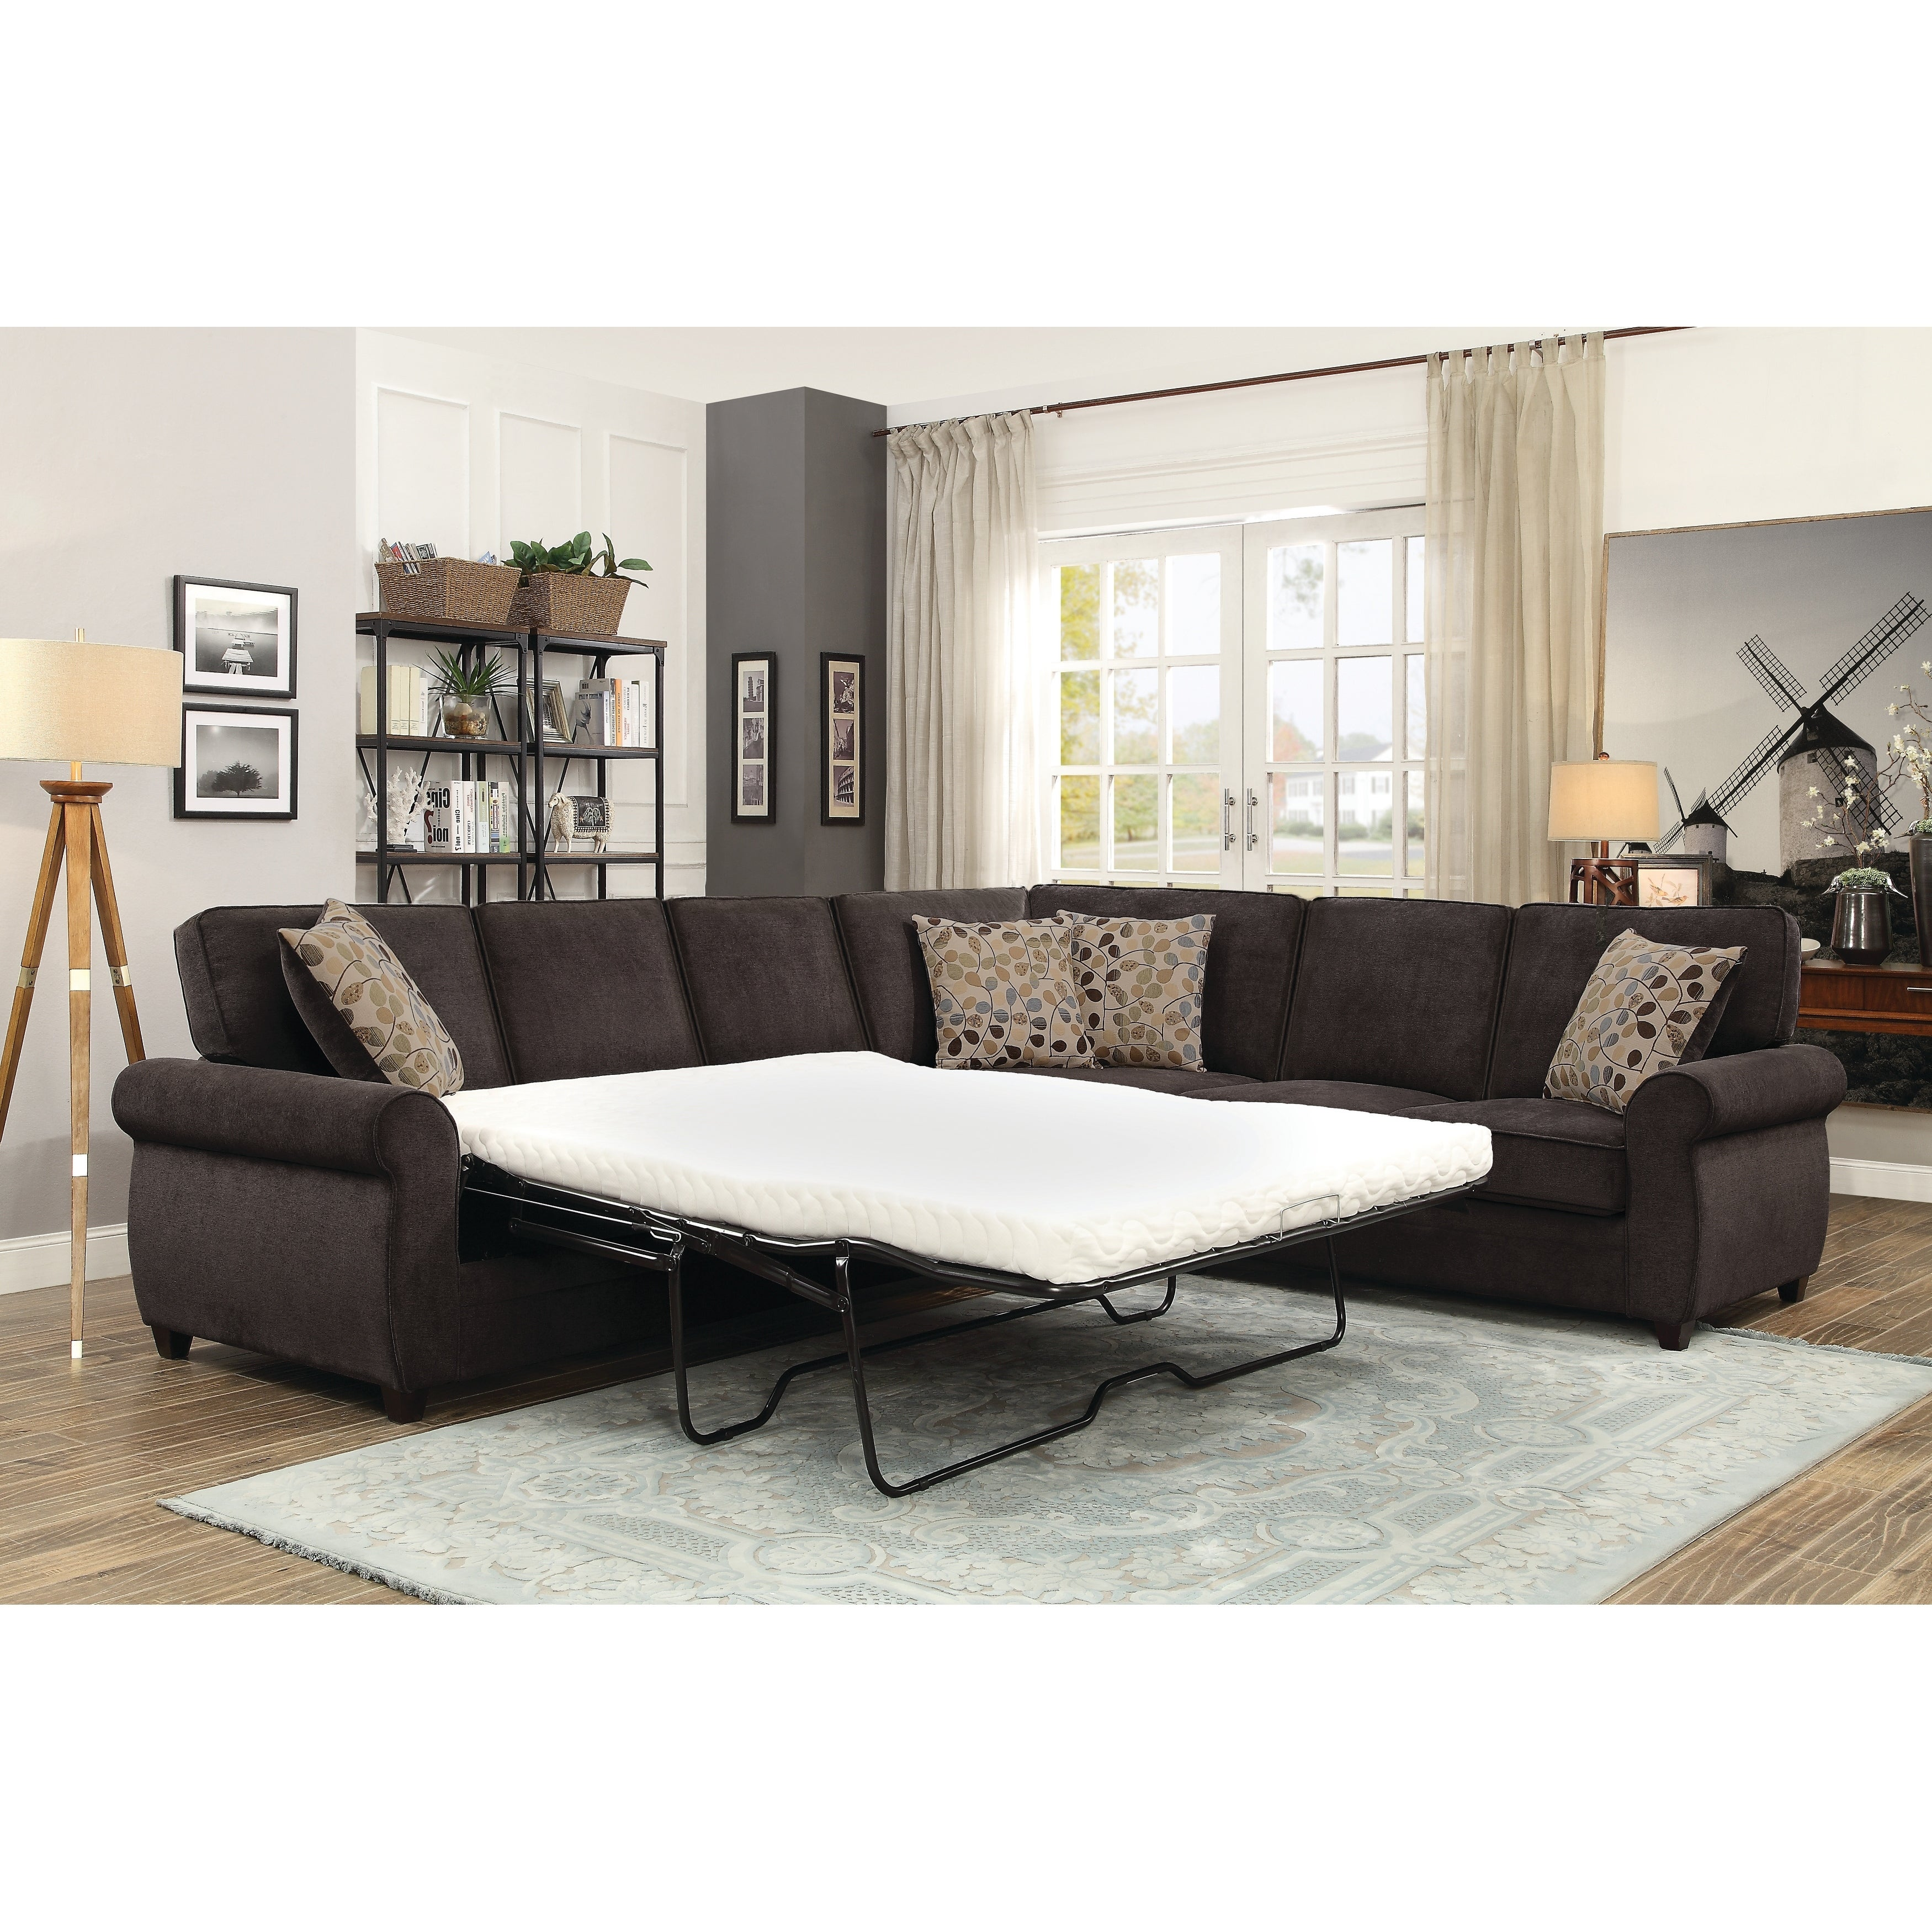 Awe Inspiring Kendrick Transitional Sectional Gmtry Best Dining Table And Chair Ideas Images Gmtryco